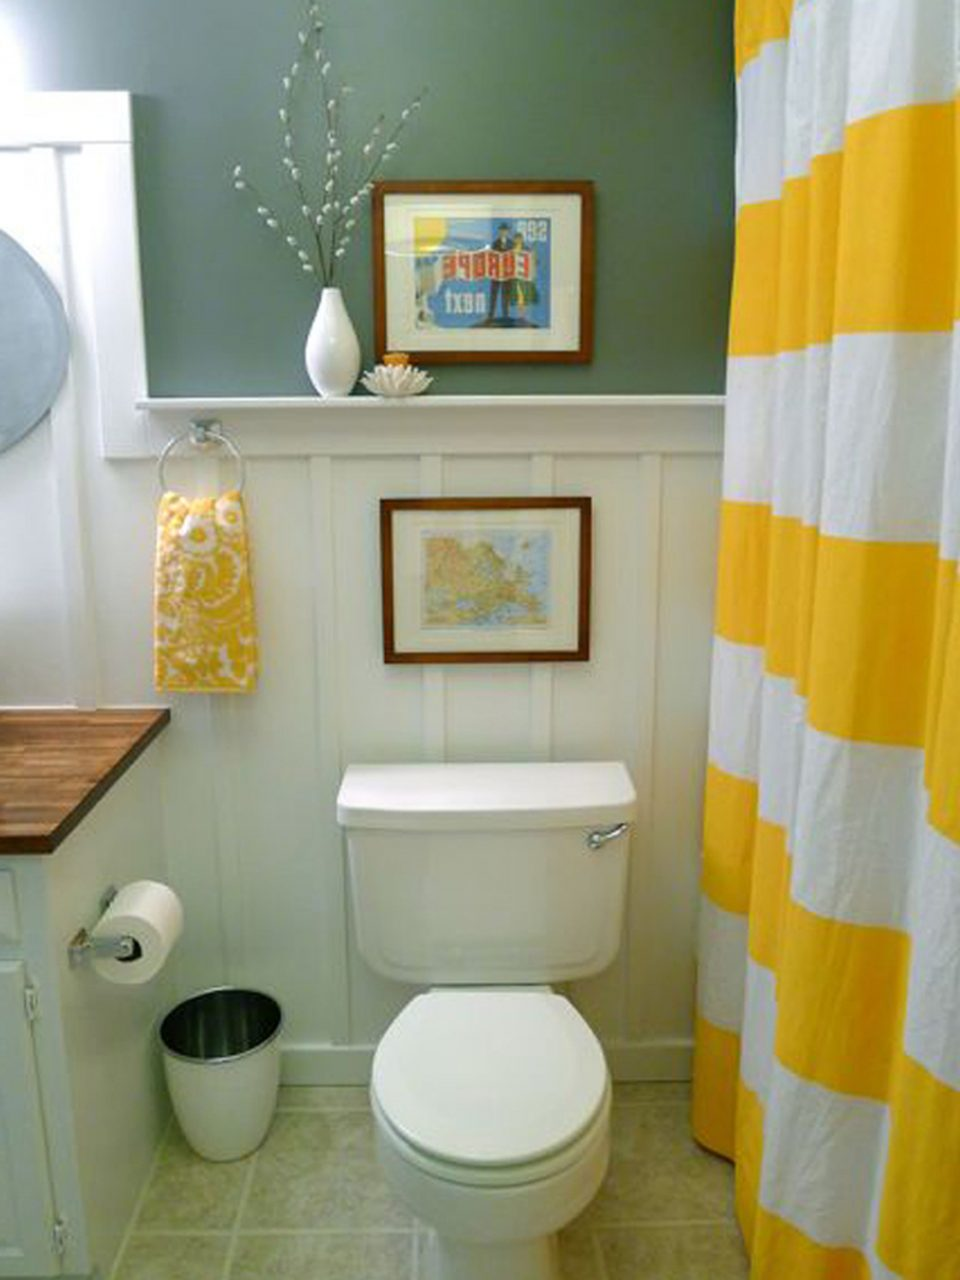 Apartment Bathroom Decorating Ideas On A Budget New House Designs